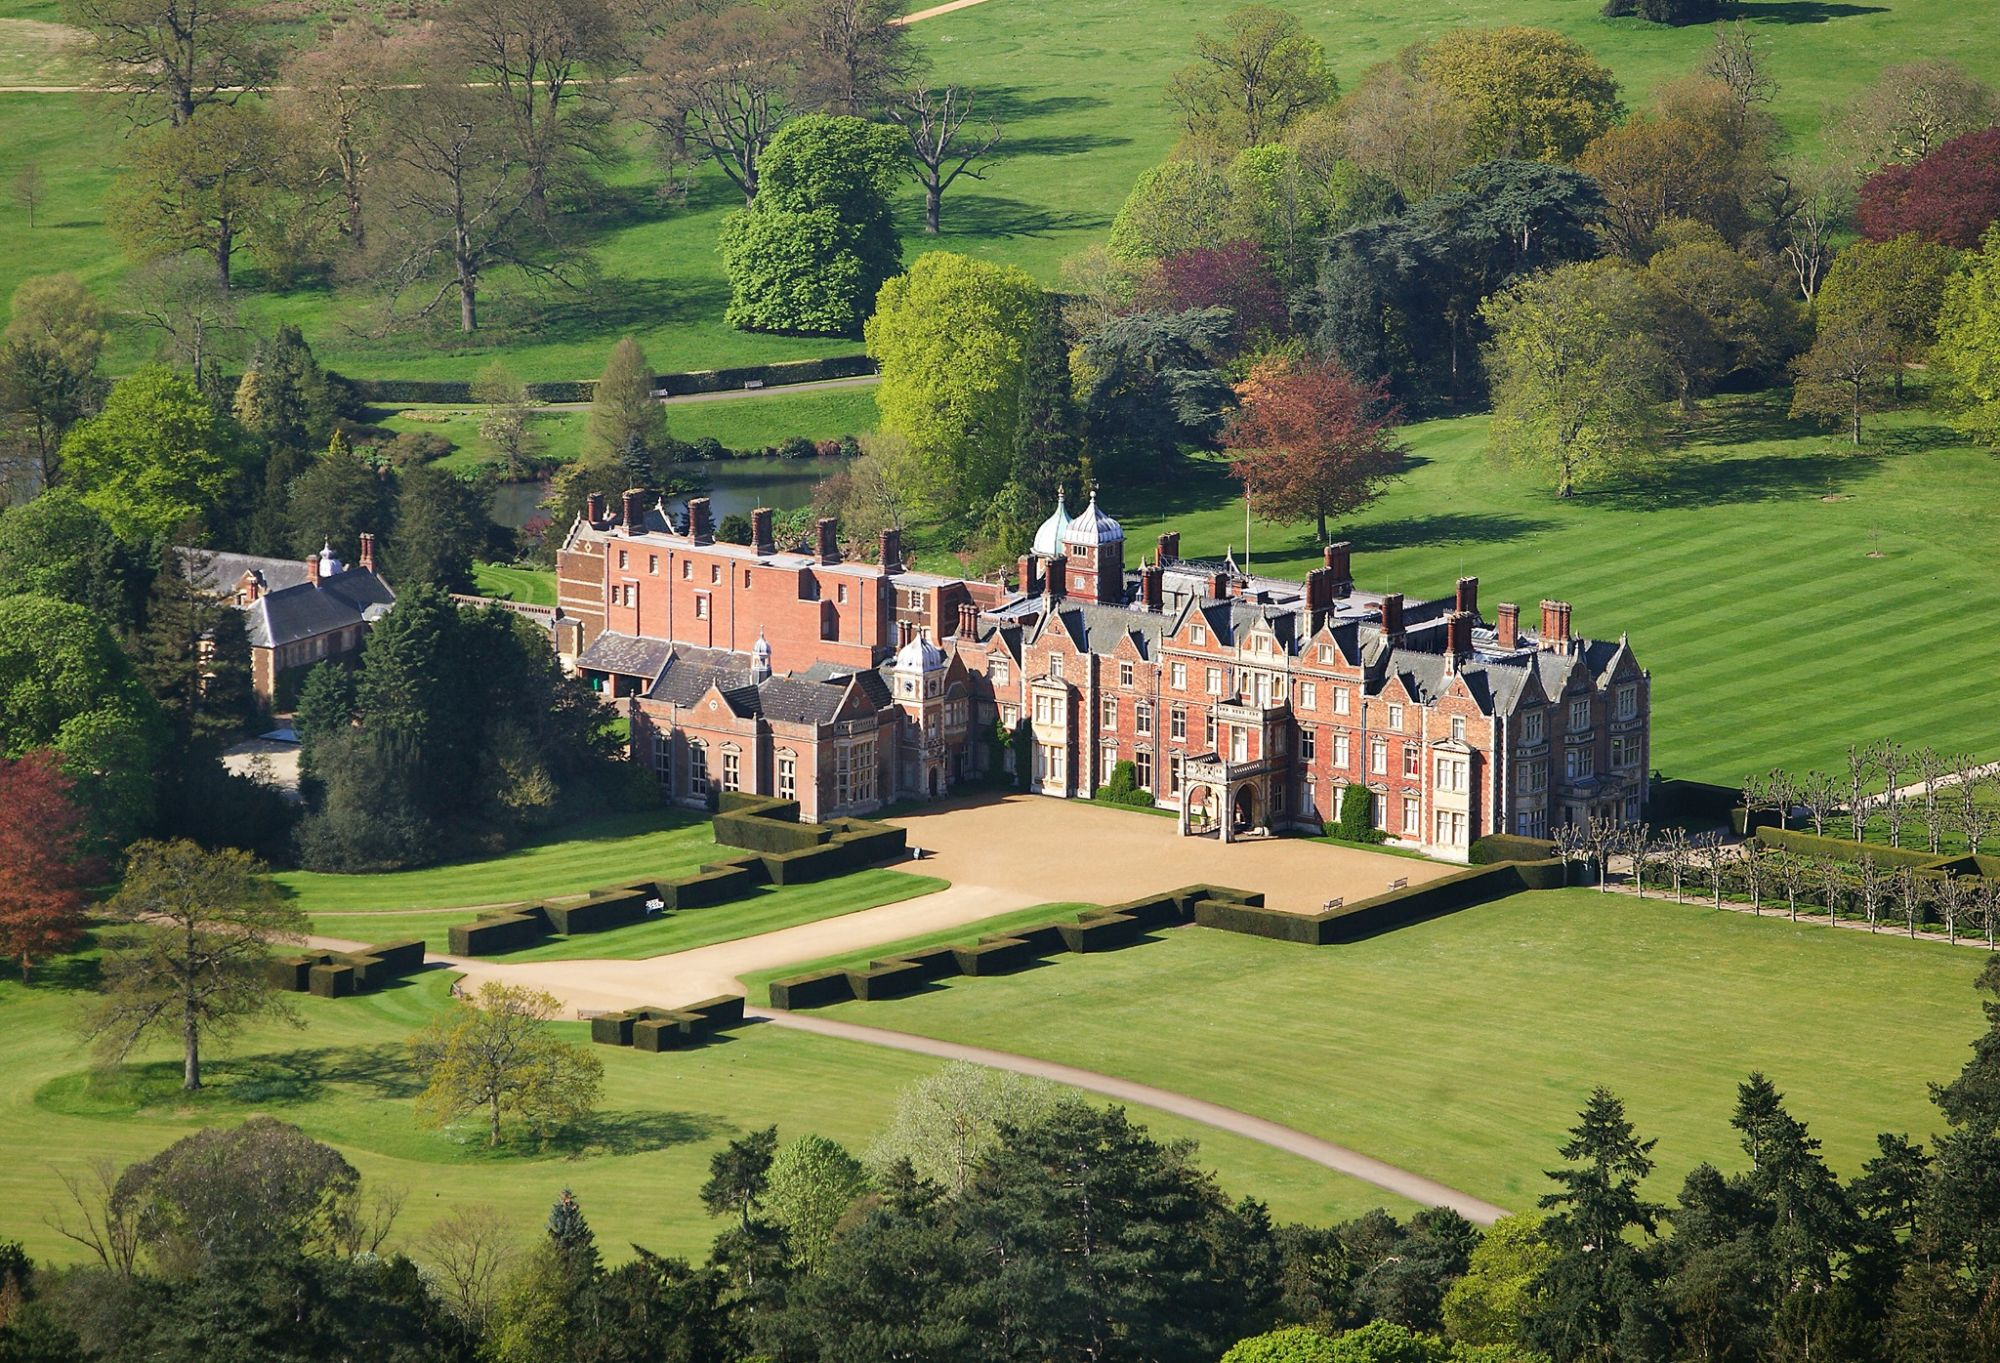 Queen Elizabeth Turns Sandringham Estate Into a Drive-In Movie Experience